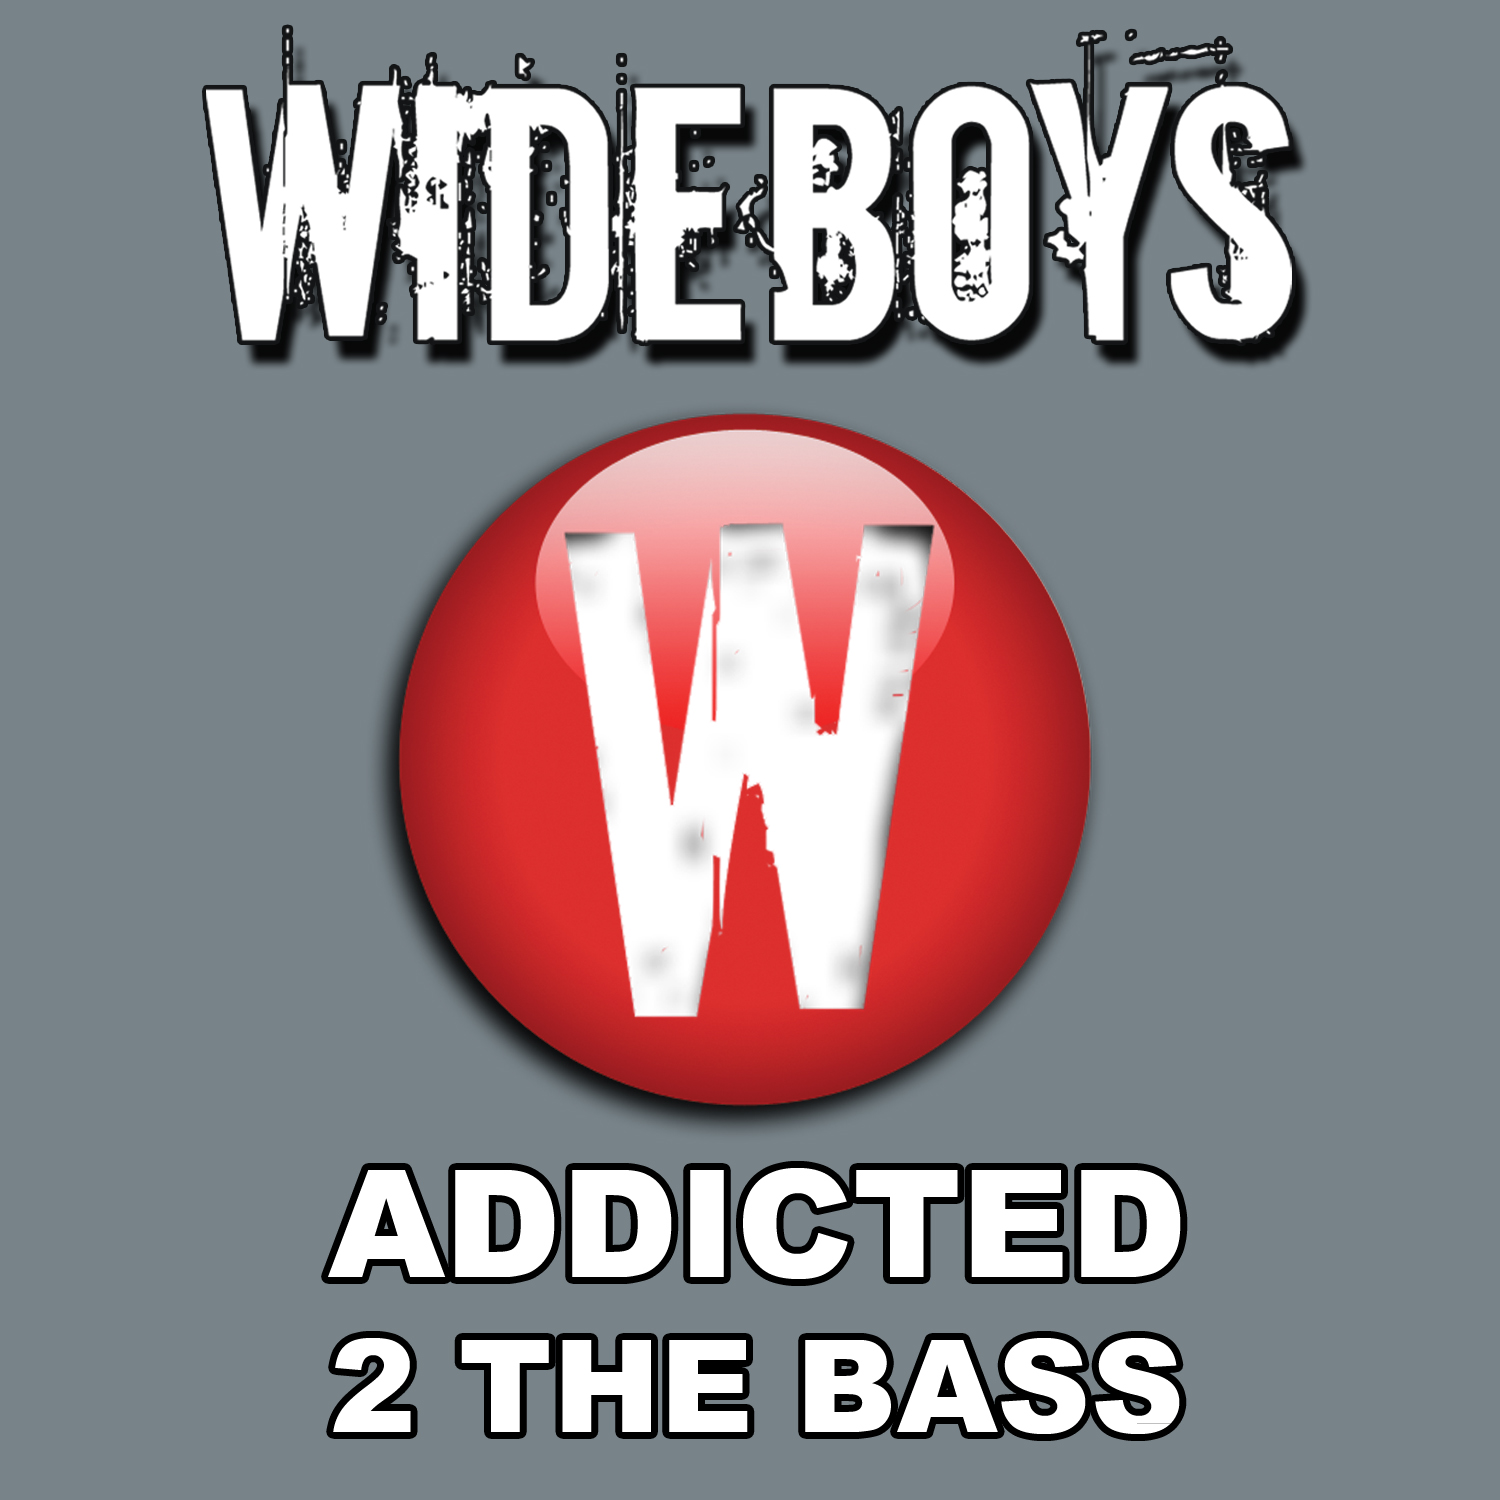 Wideboys – Addicted 2 The Bass (Karbonite Dubstep Mix)